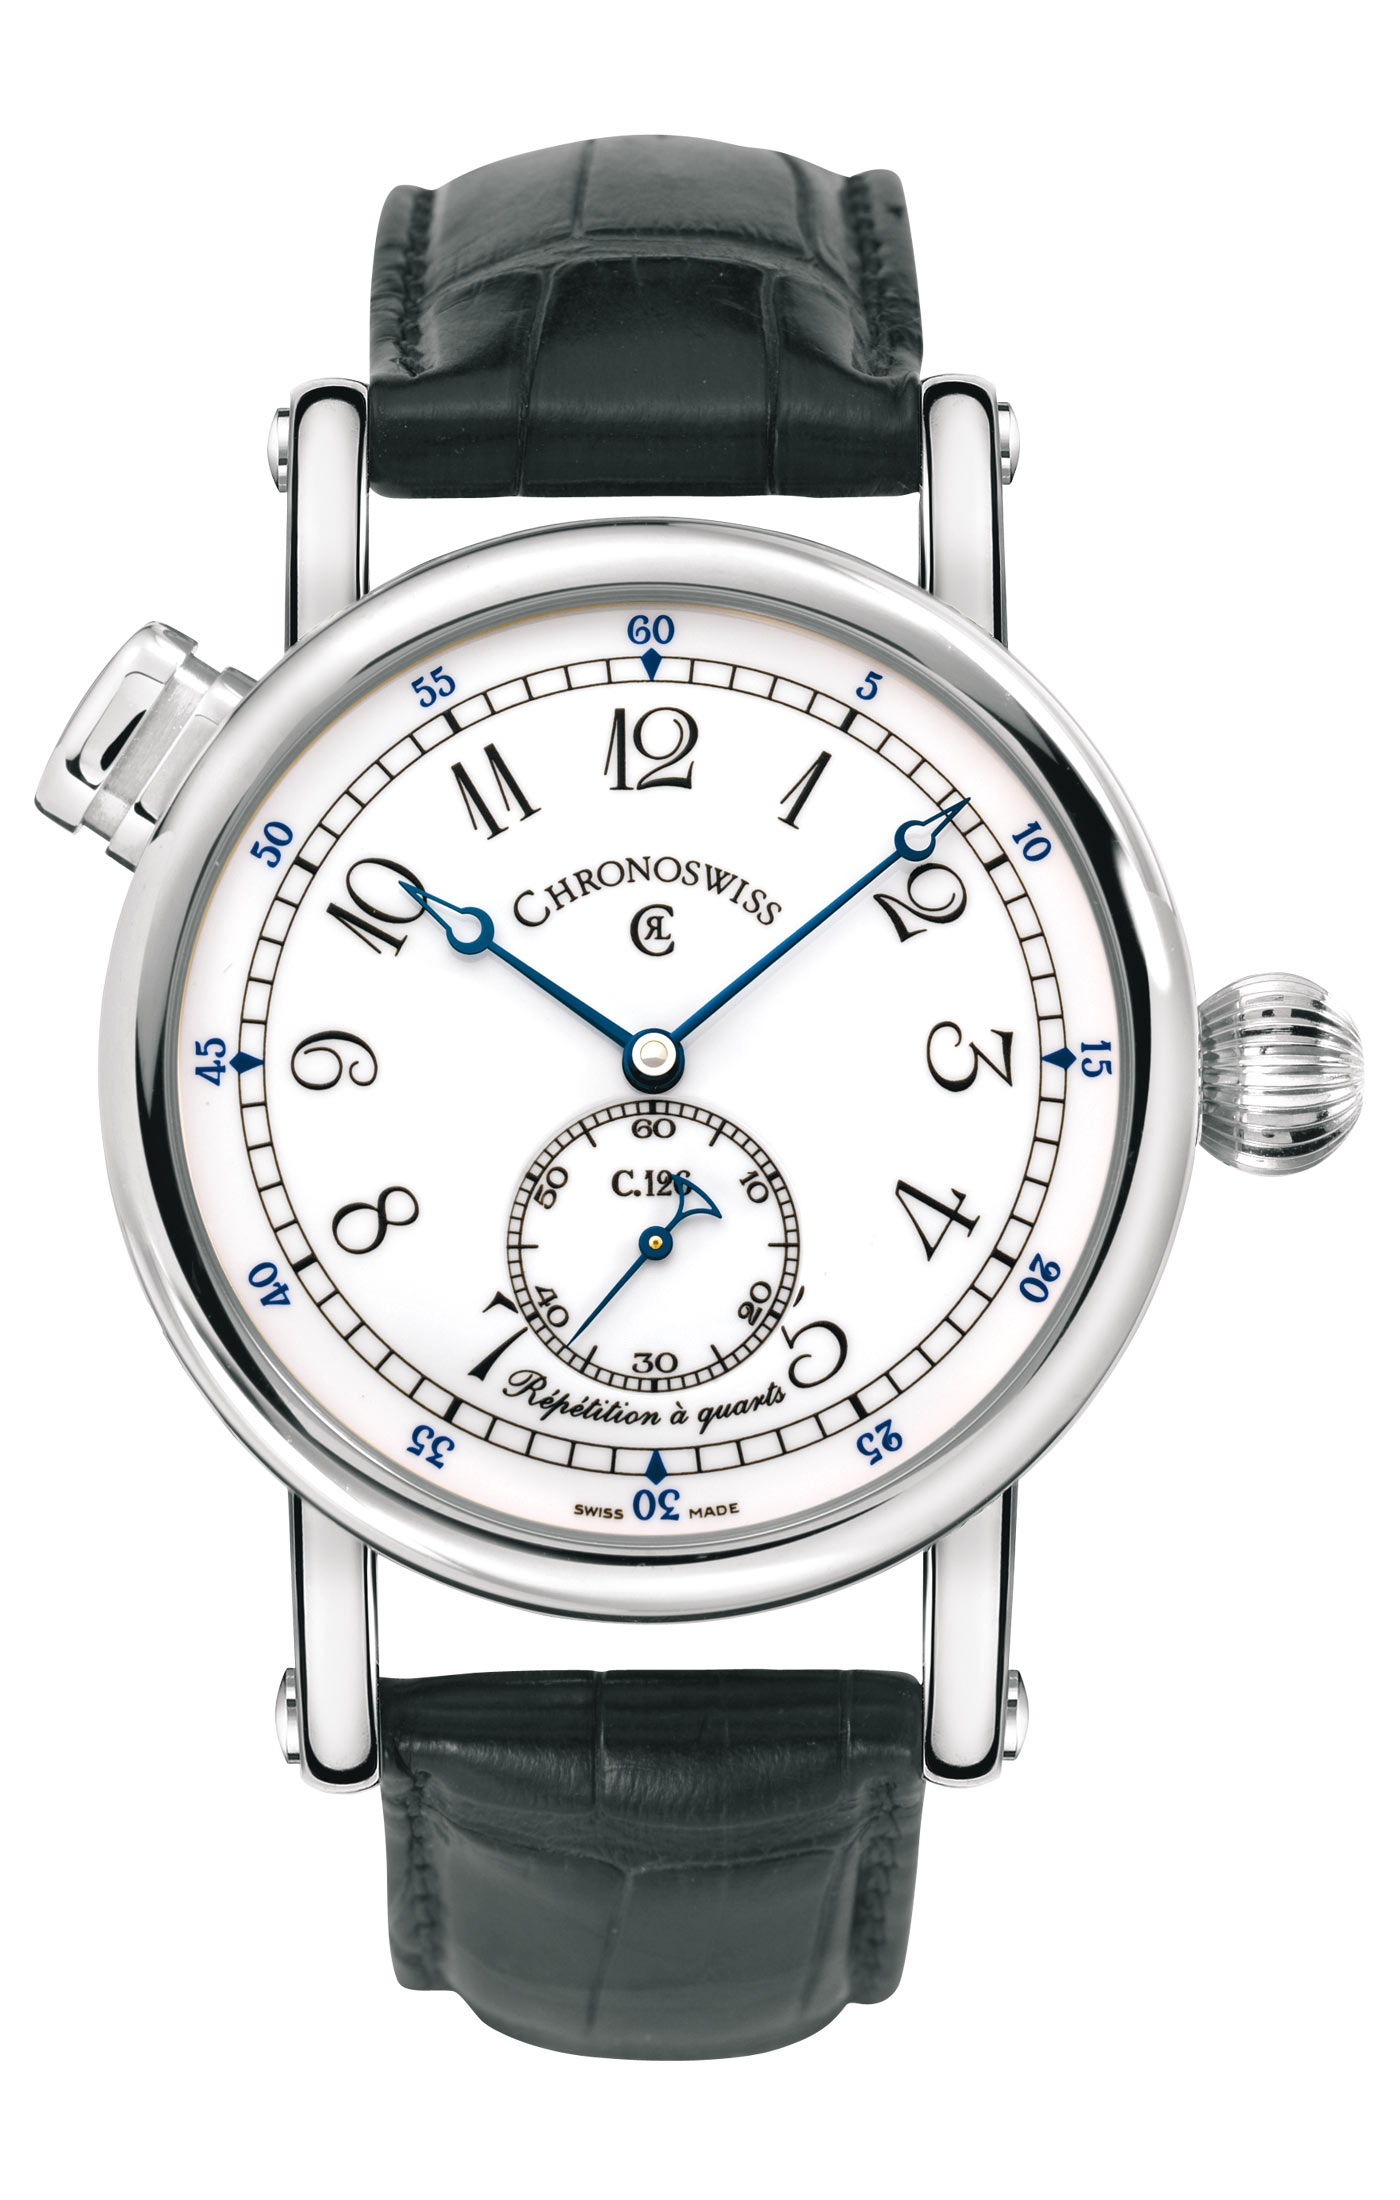 ���� Chronoswiss Repetition a Quarts